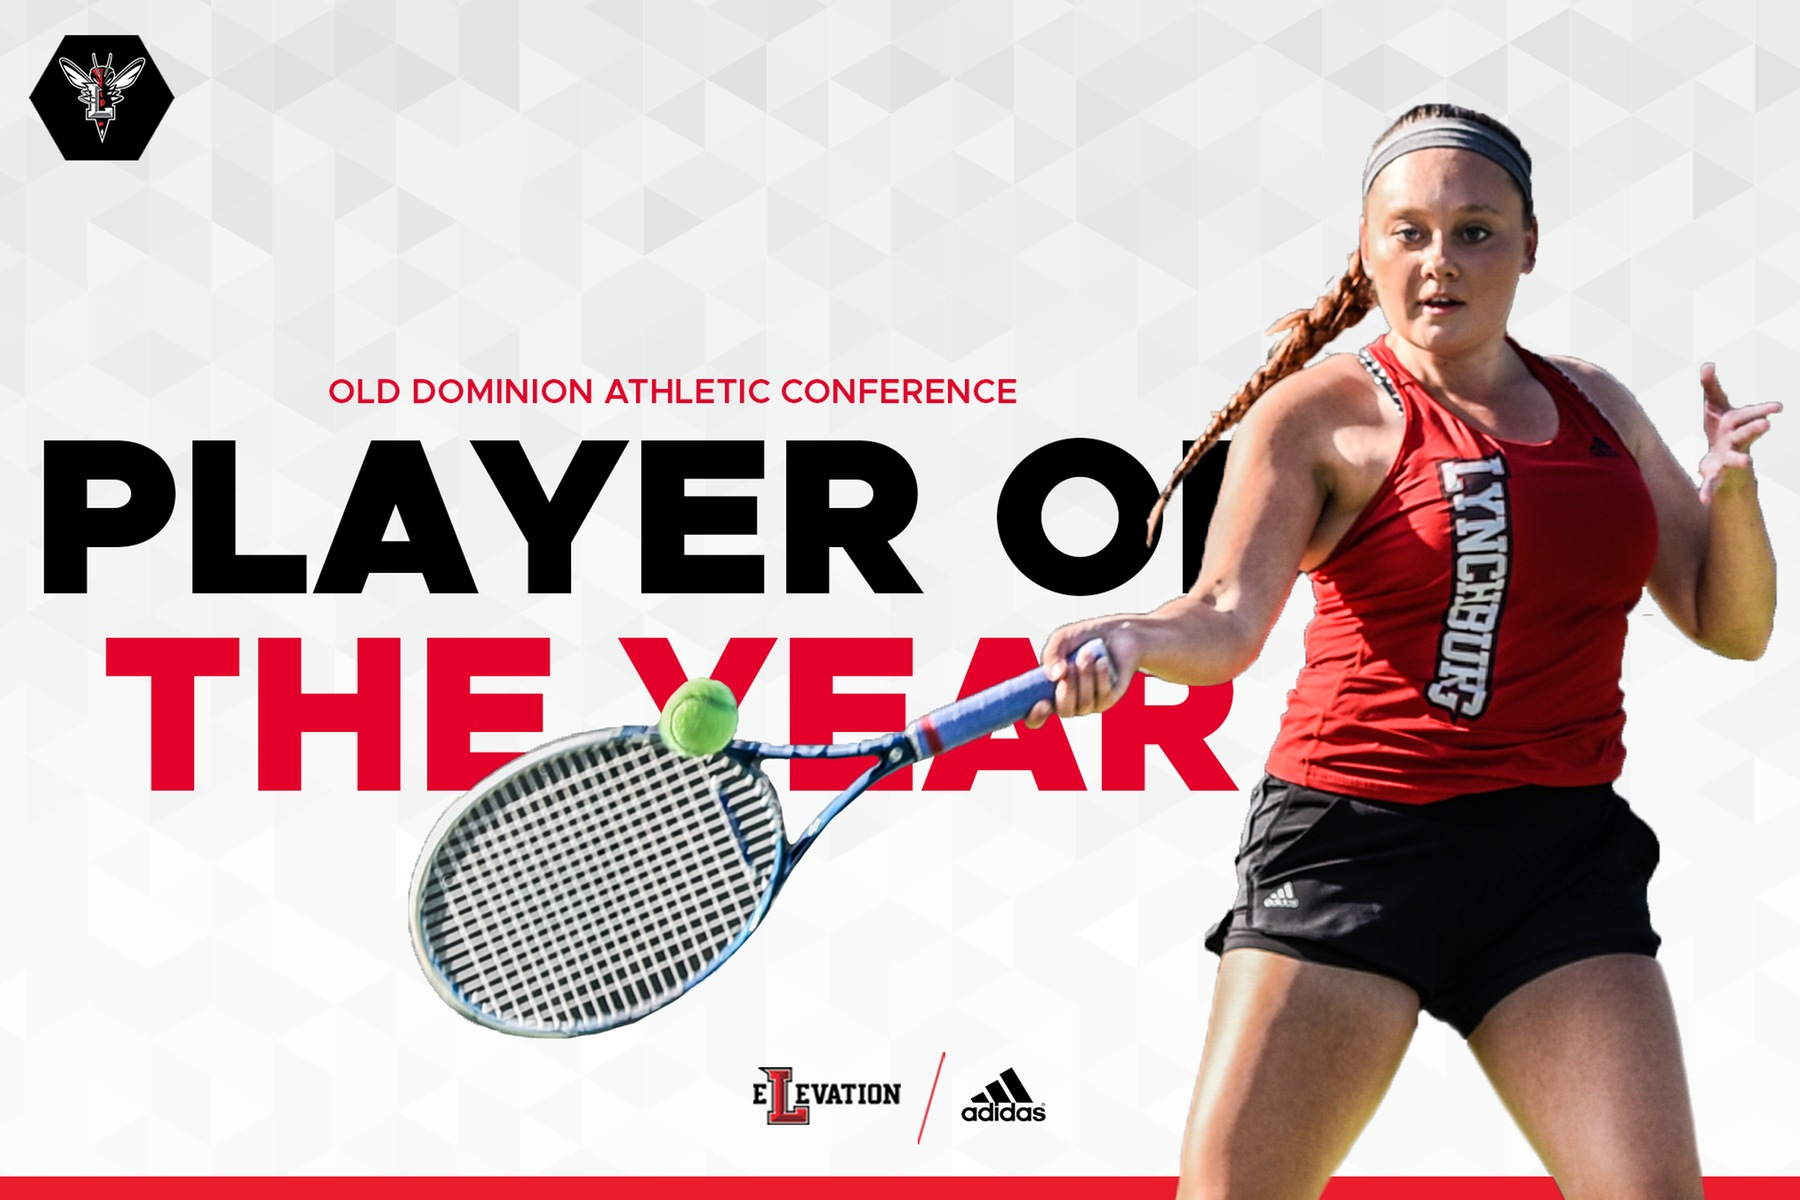 ODAC player of the year graphic Christina Harris hitting a forehand shot over white background with black and red letters